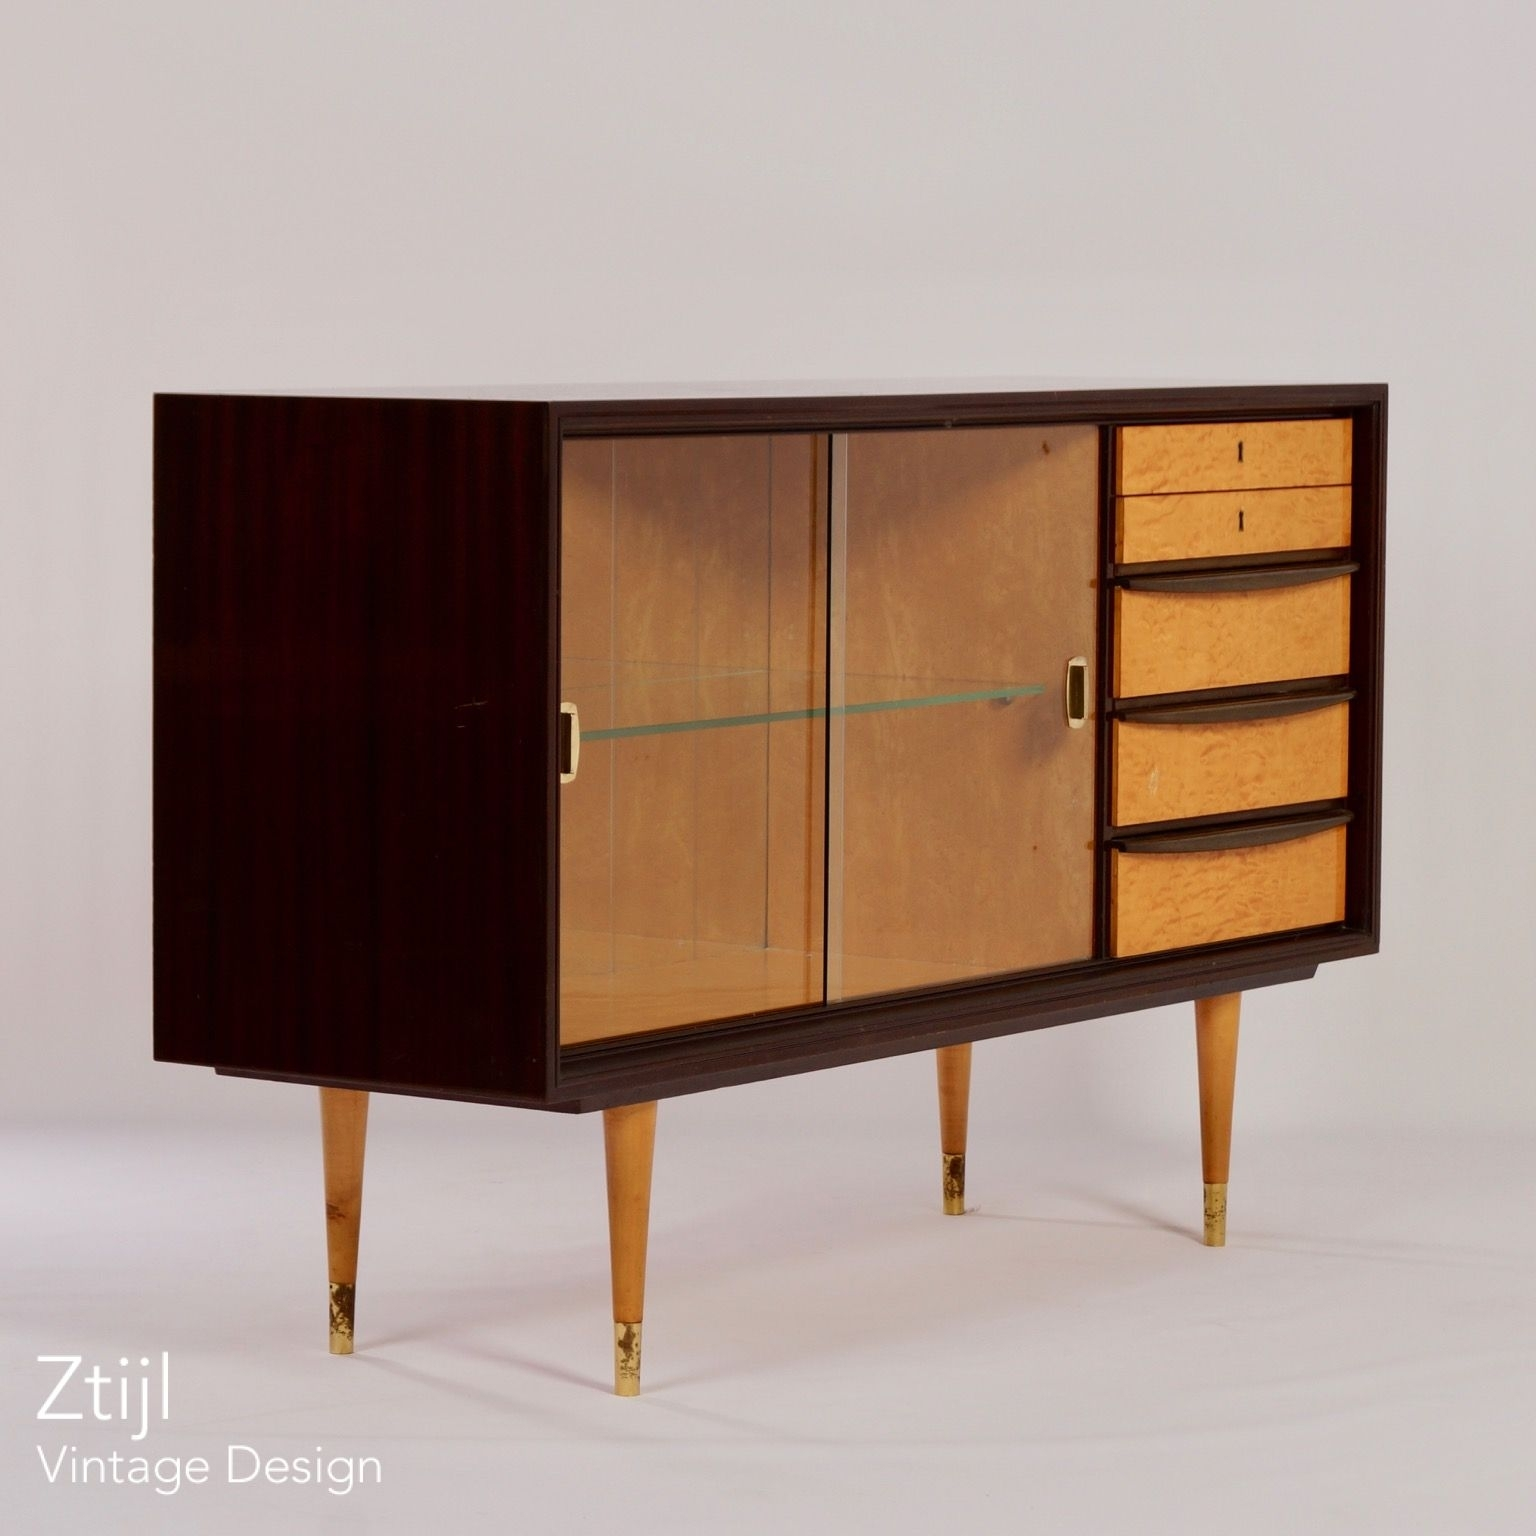 Mahogany Sideboard With Showcase And Brass Details, 1960s – Vintage Within Current Aged Brass Sideboards (View 13 of 20)